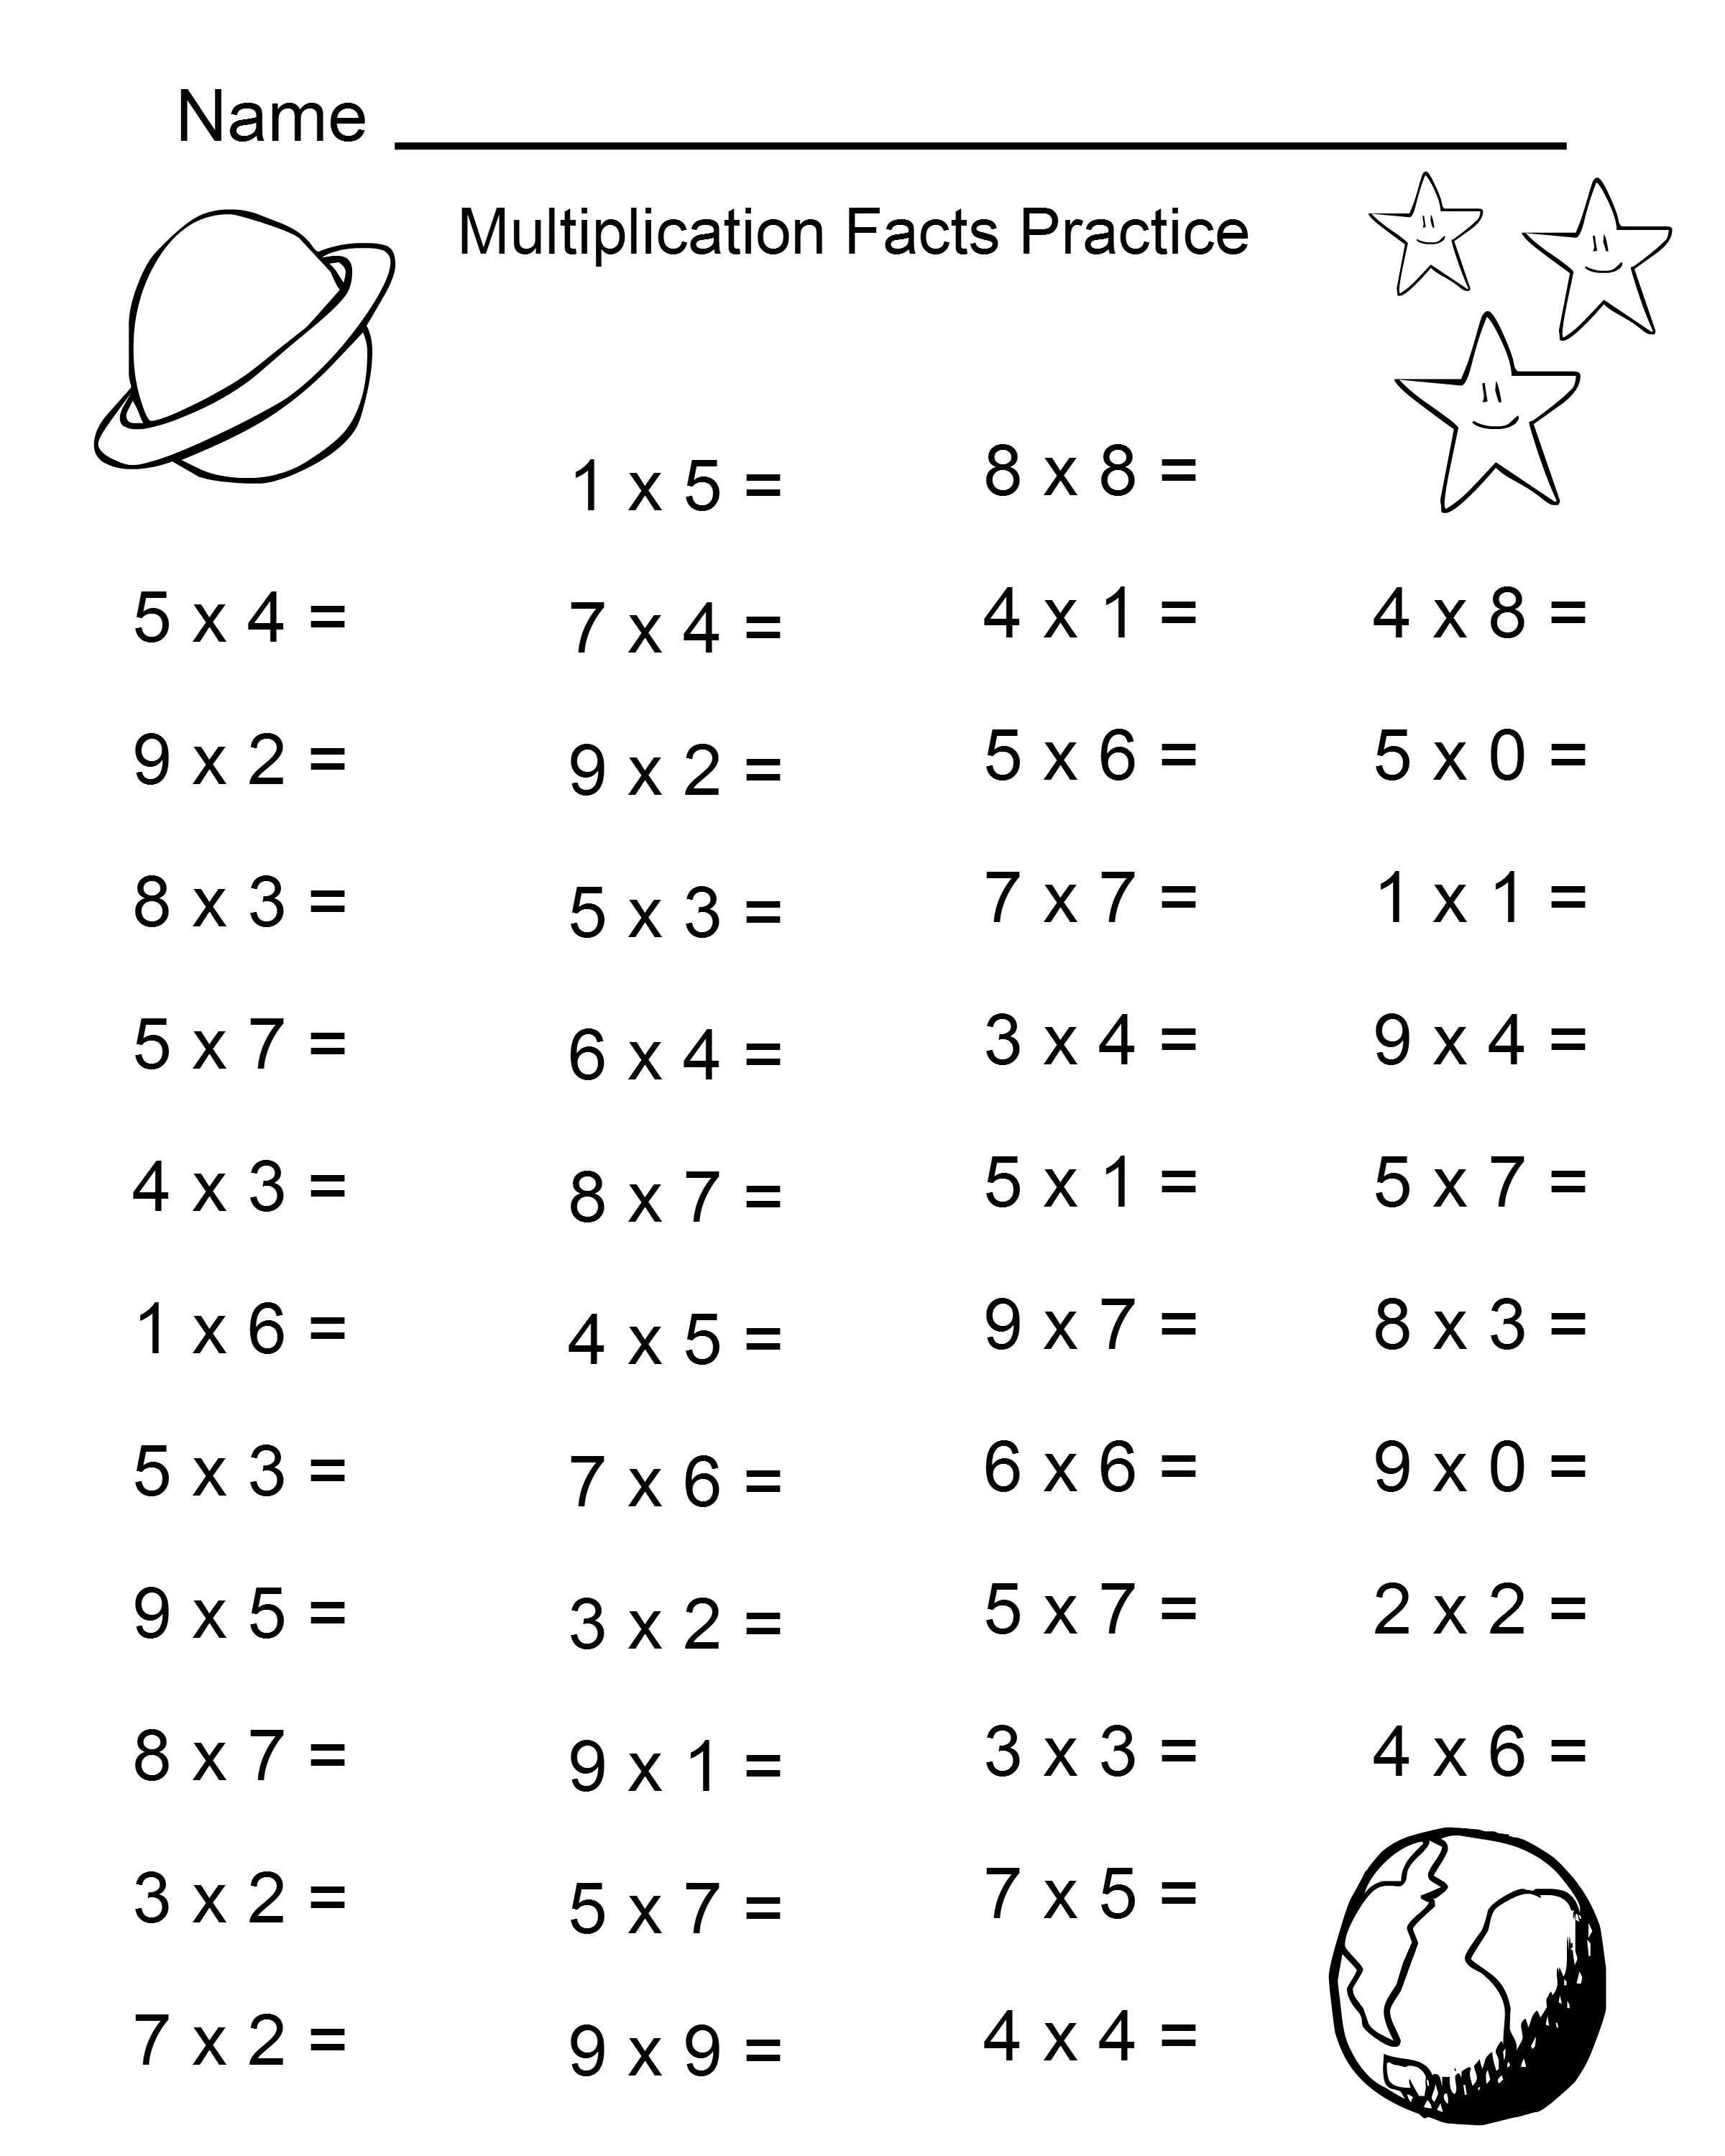 Multiplication worksheets facts pratice